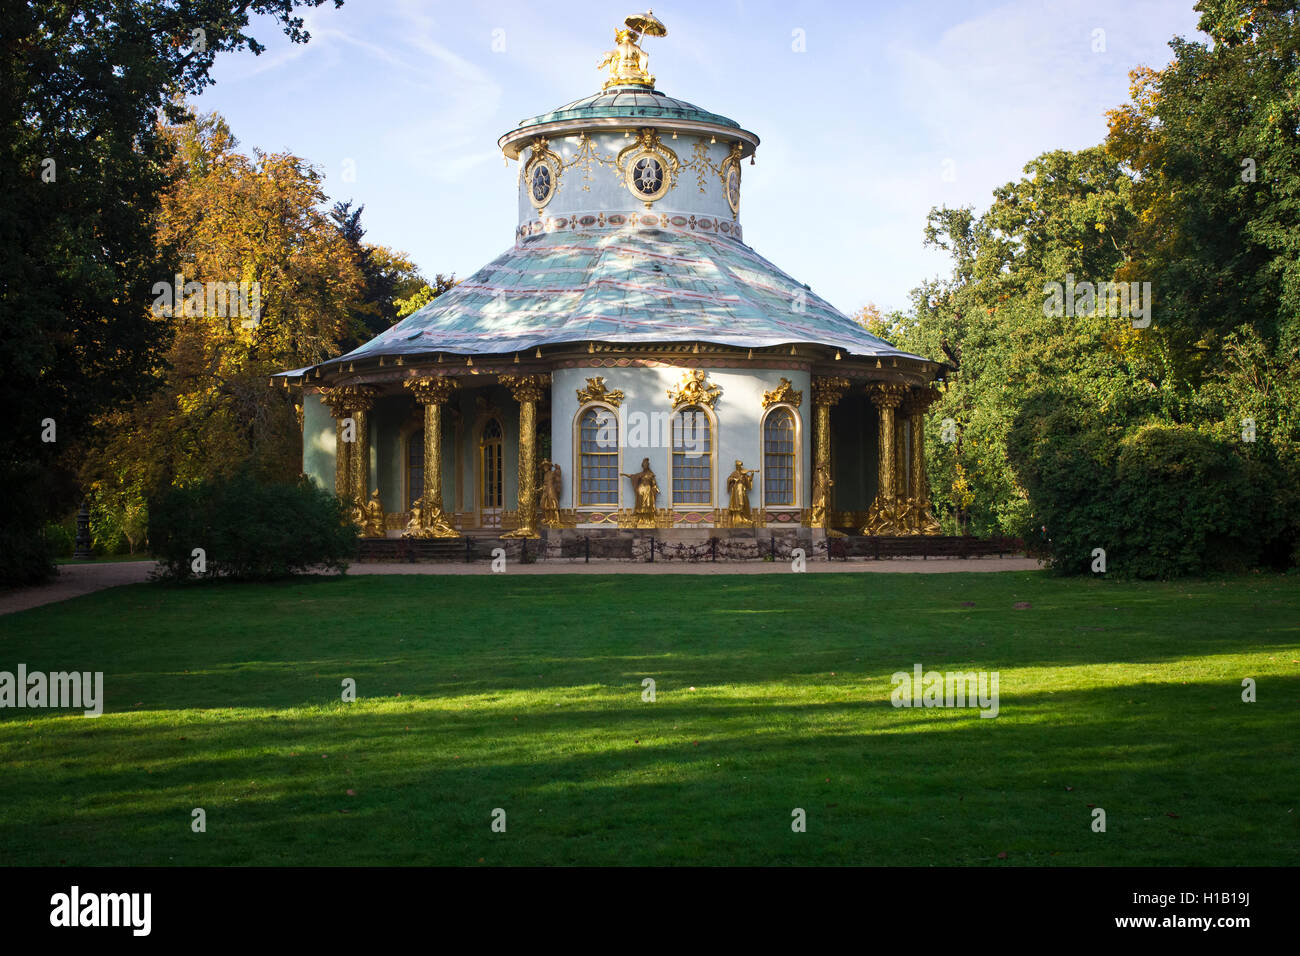 A view of the Chinese House in Sansoucci Park, Potsdam, Germany. - Stock Image